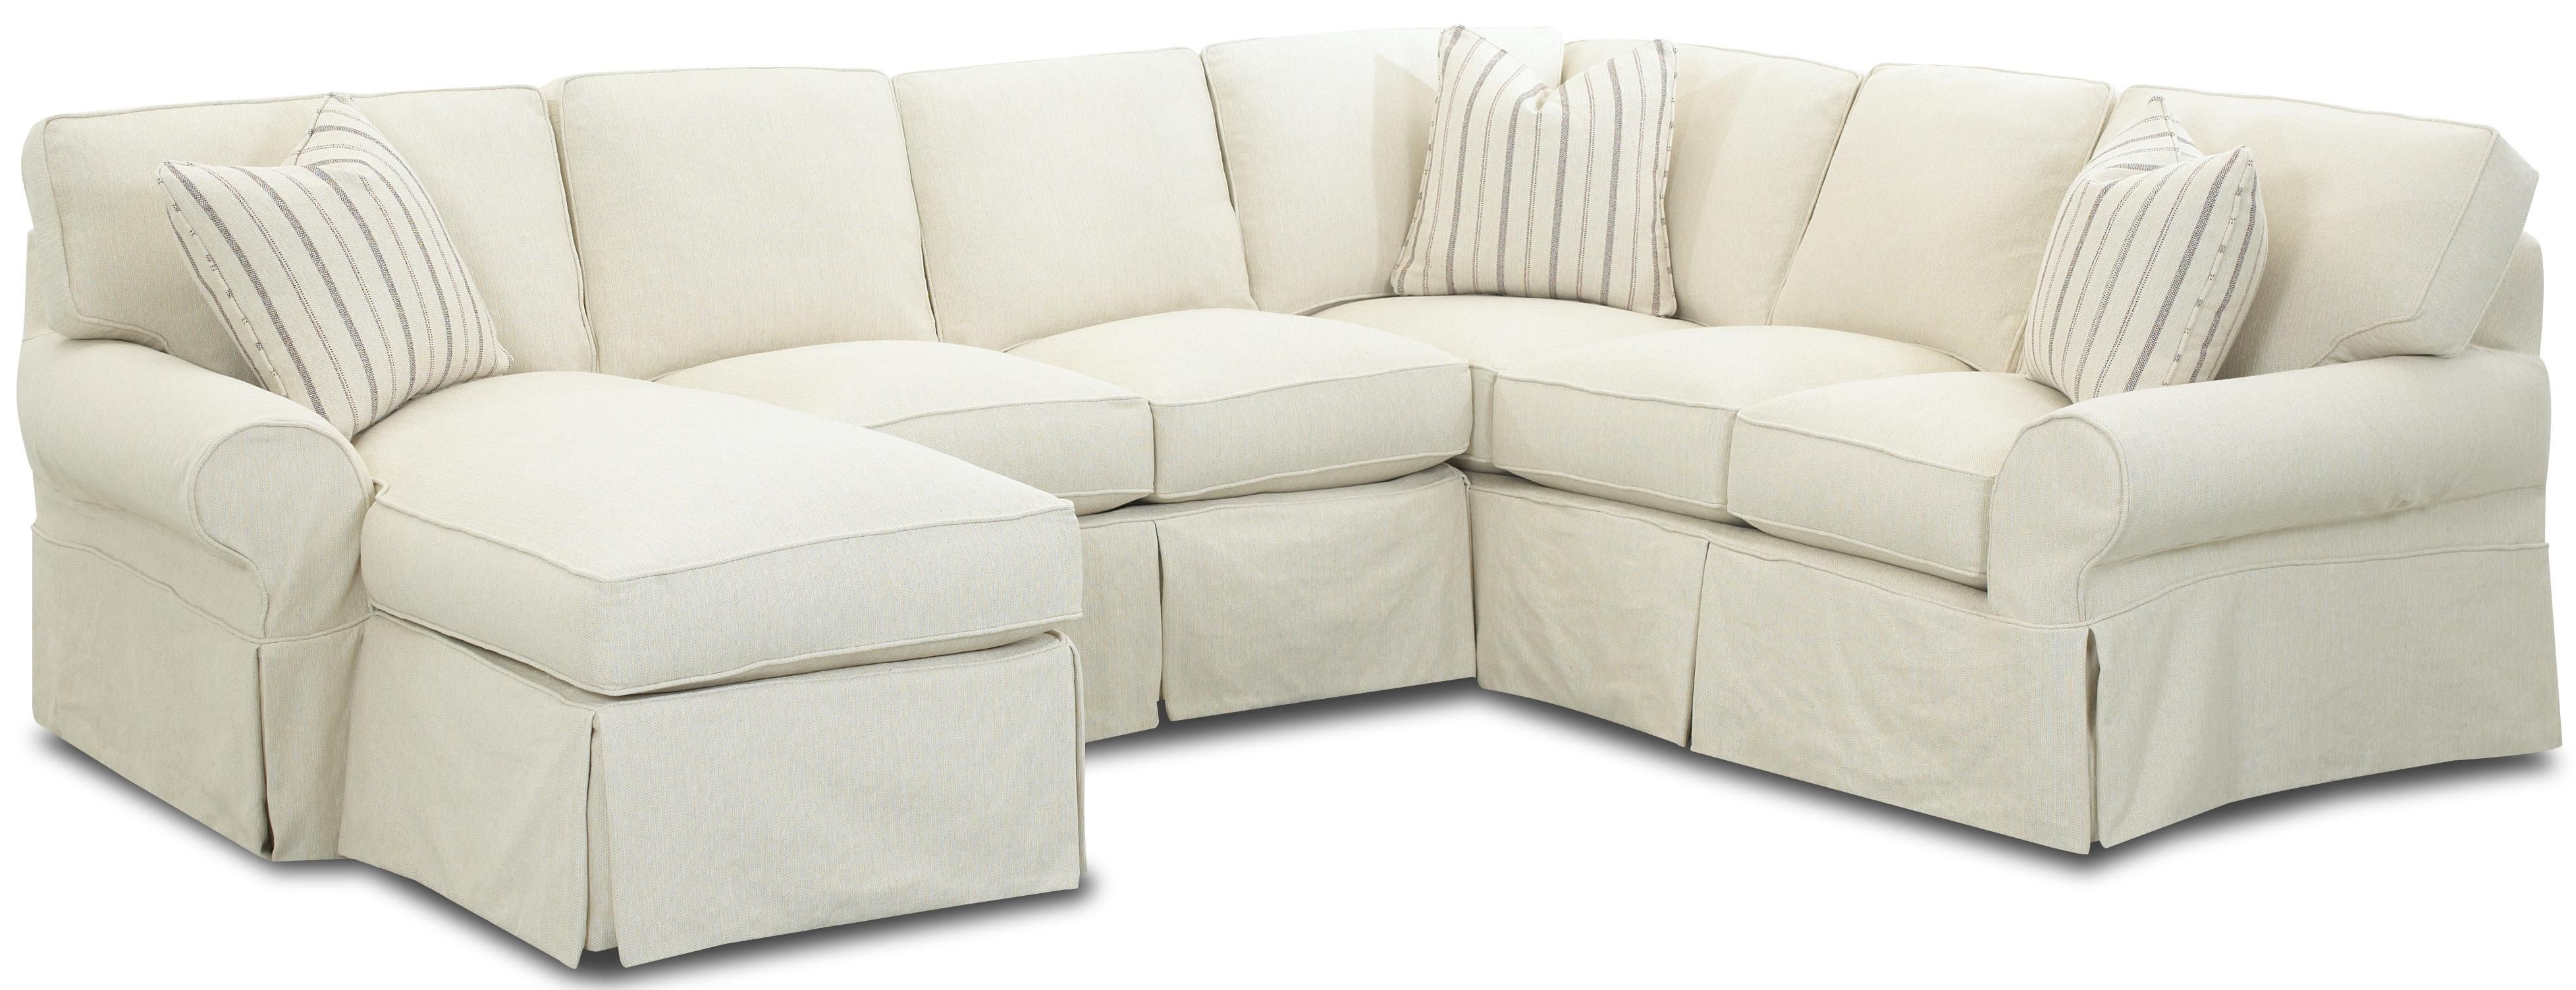 Attirant Slipcover Sectional Sofa With Chaise